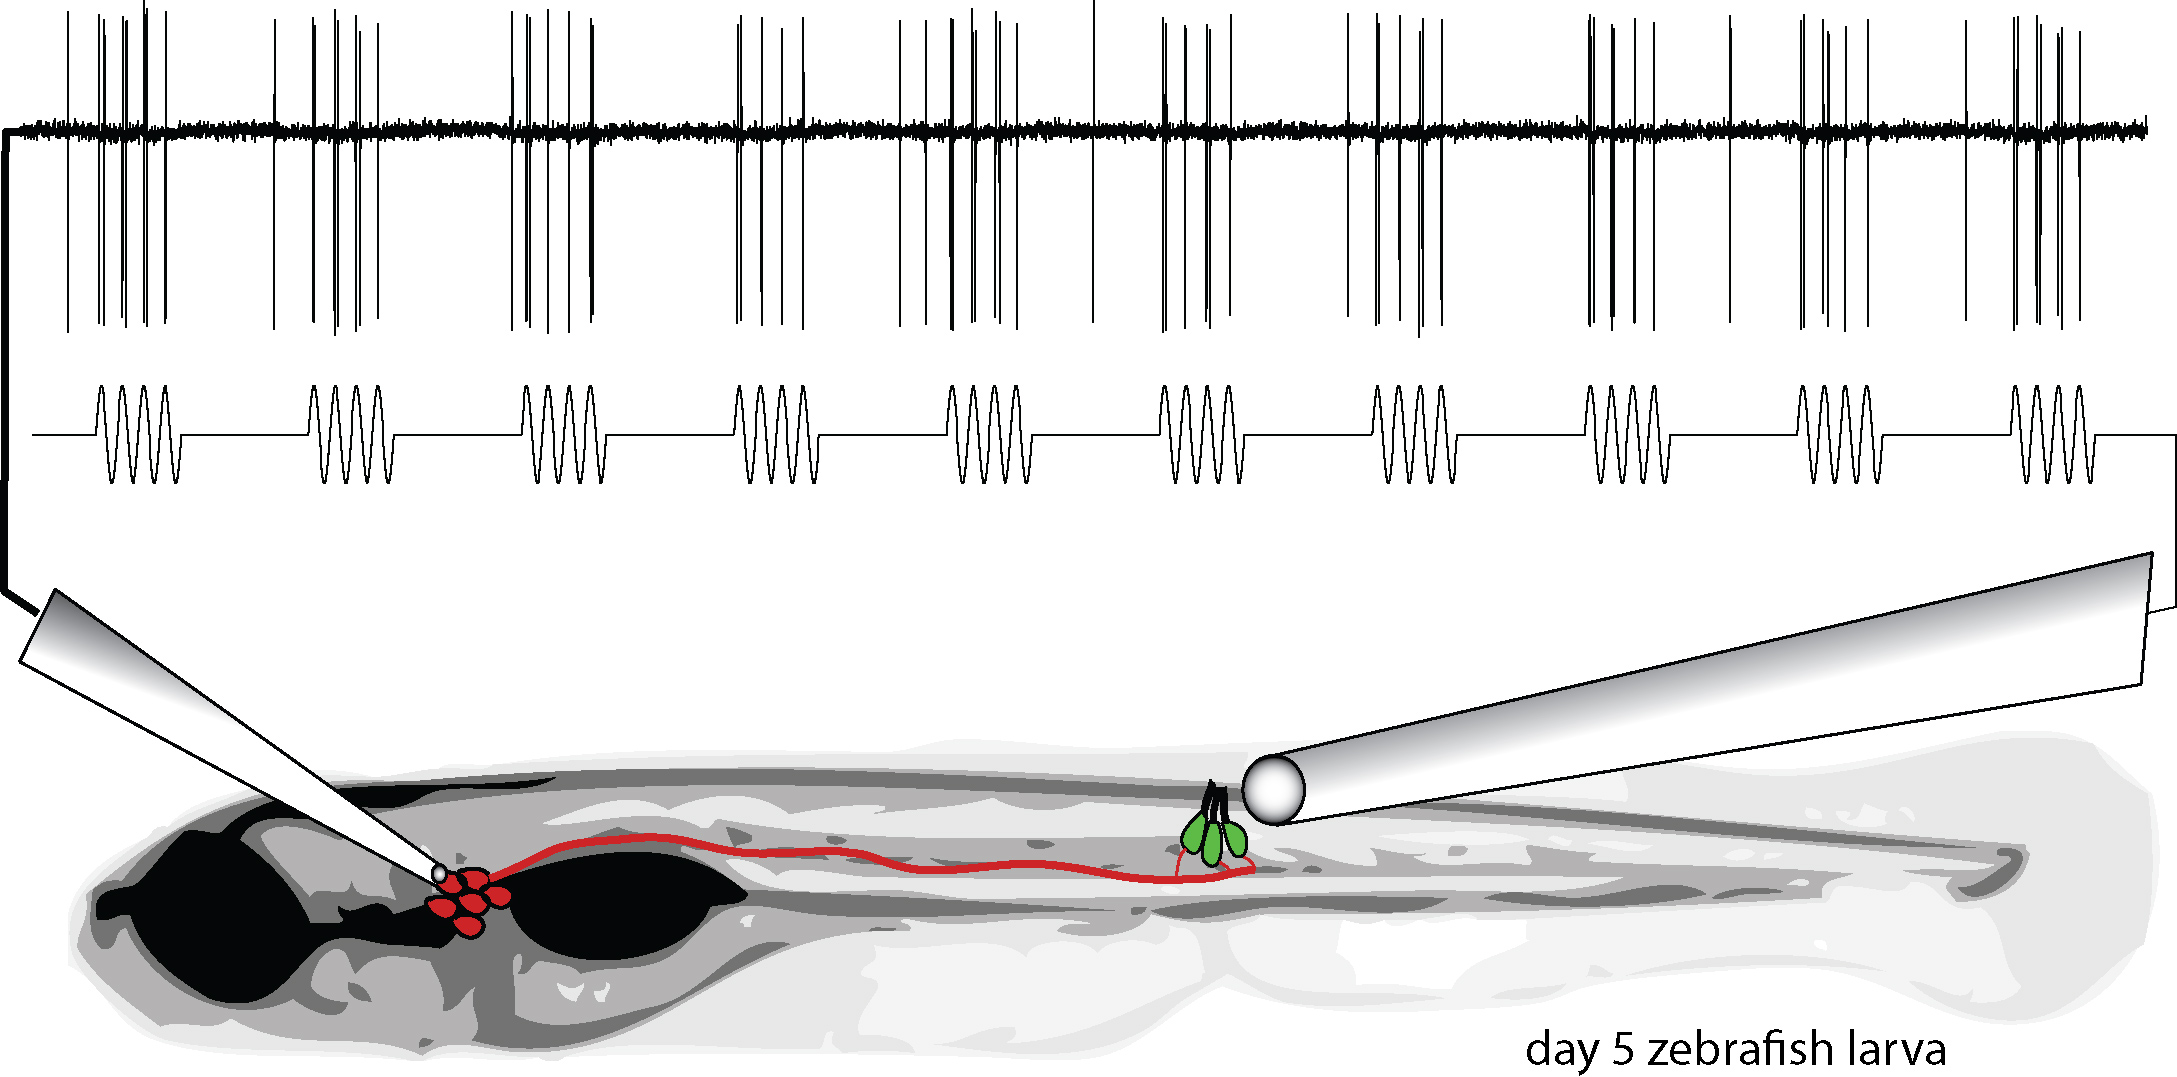 [Listening In on Hair Cell Activity in the Zebrafish Lateral Line]